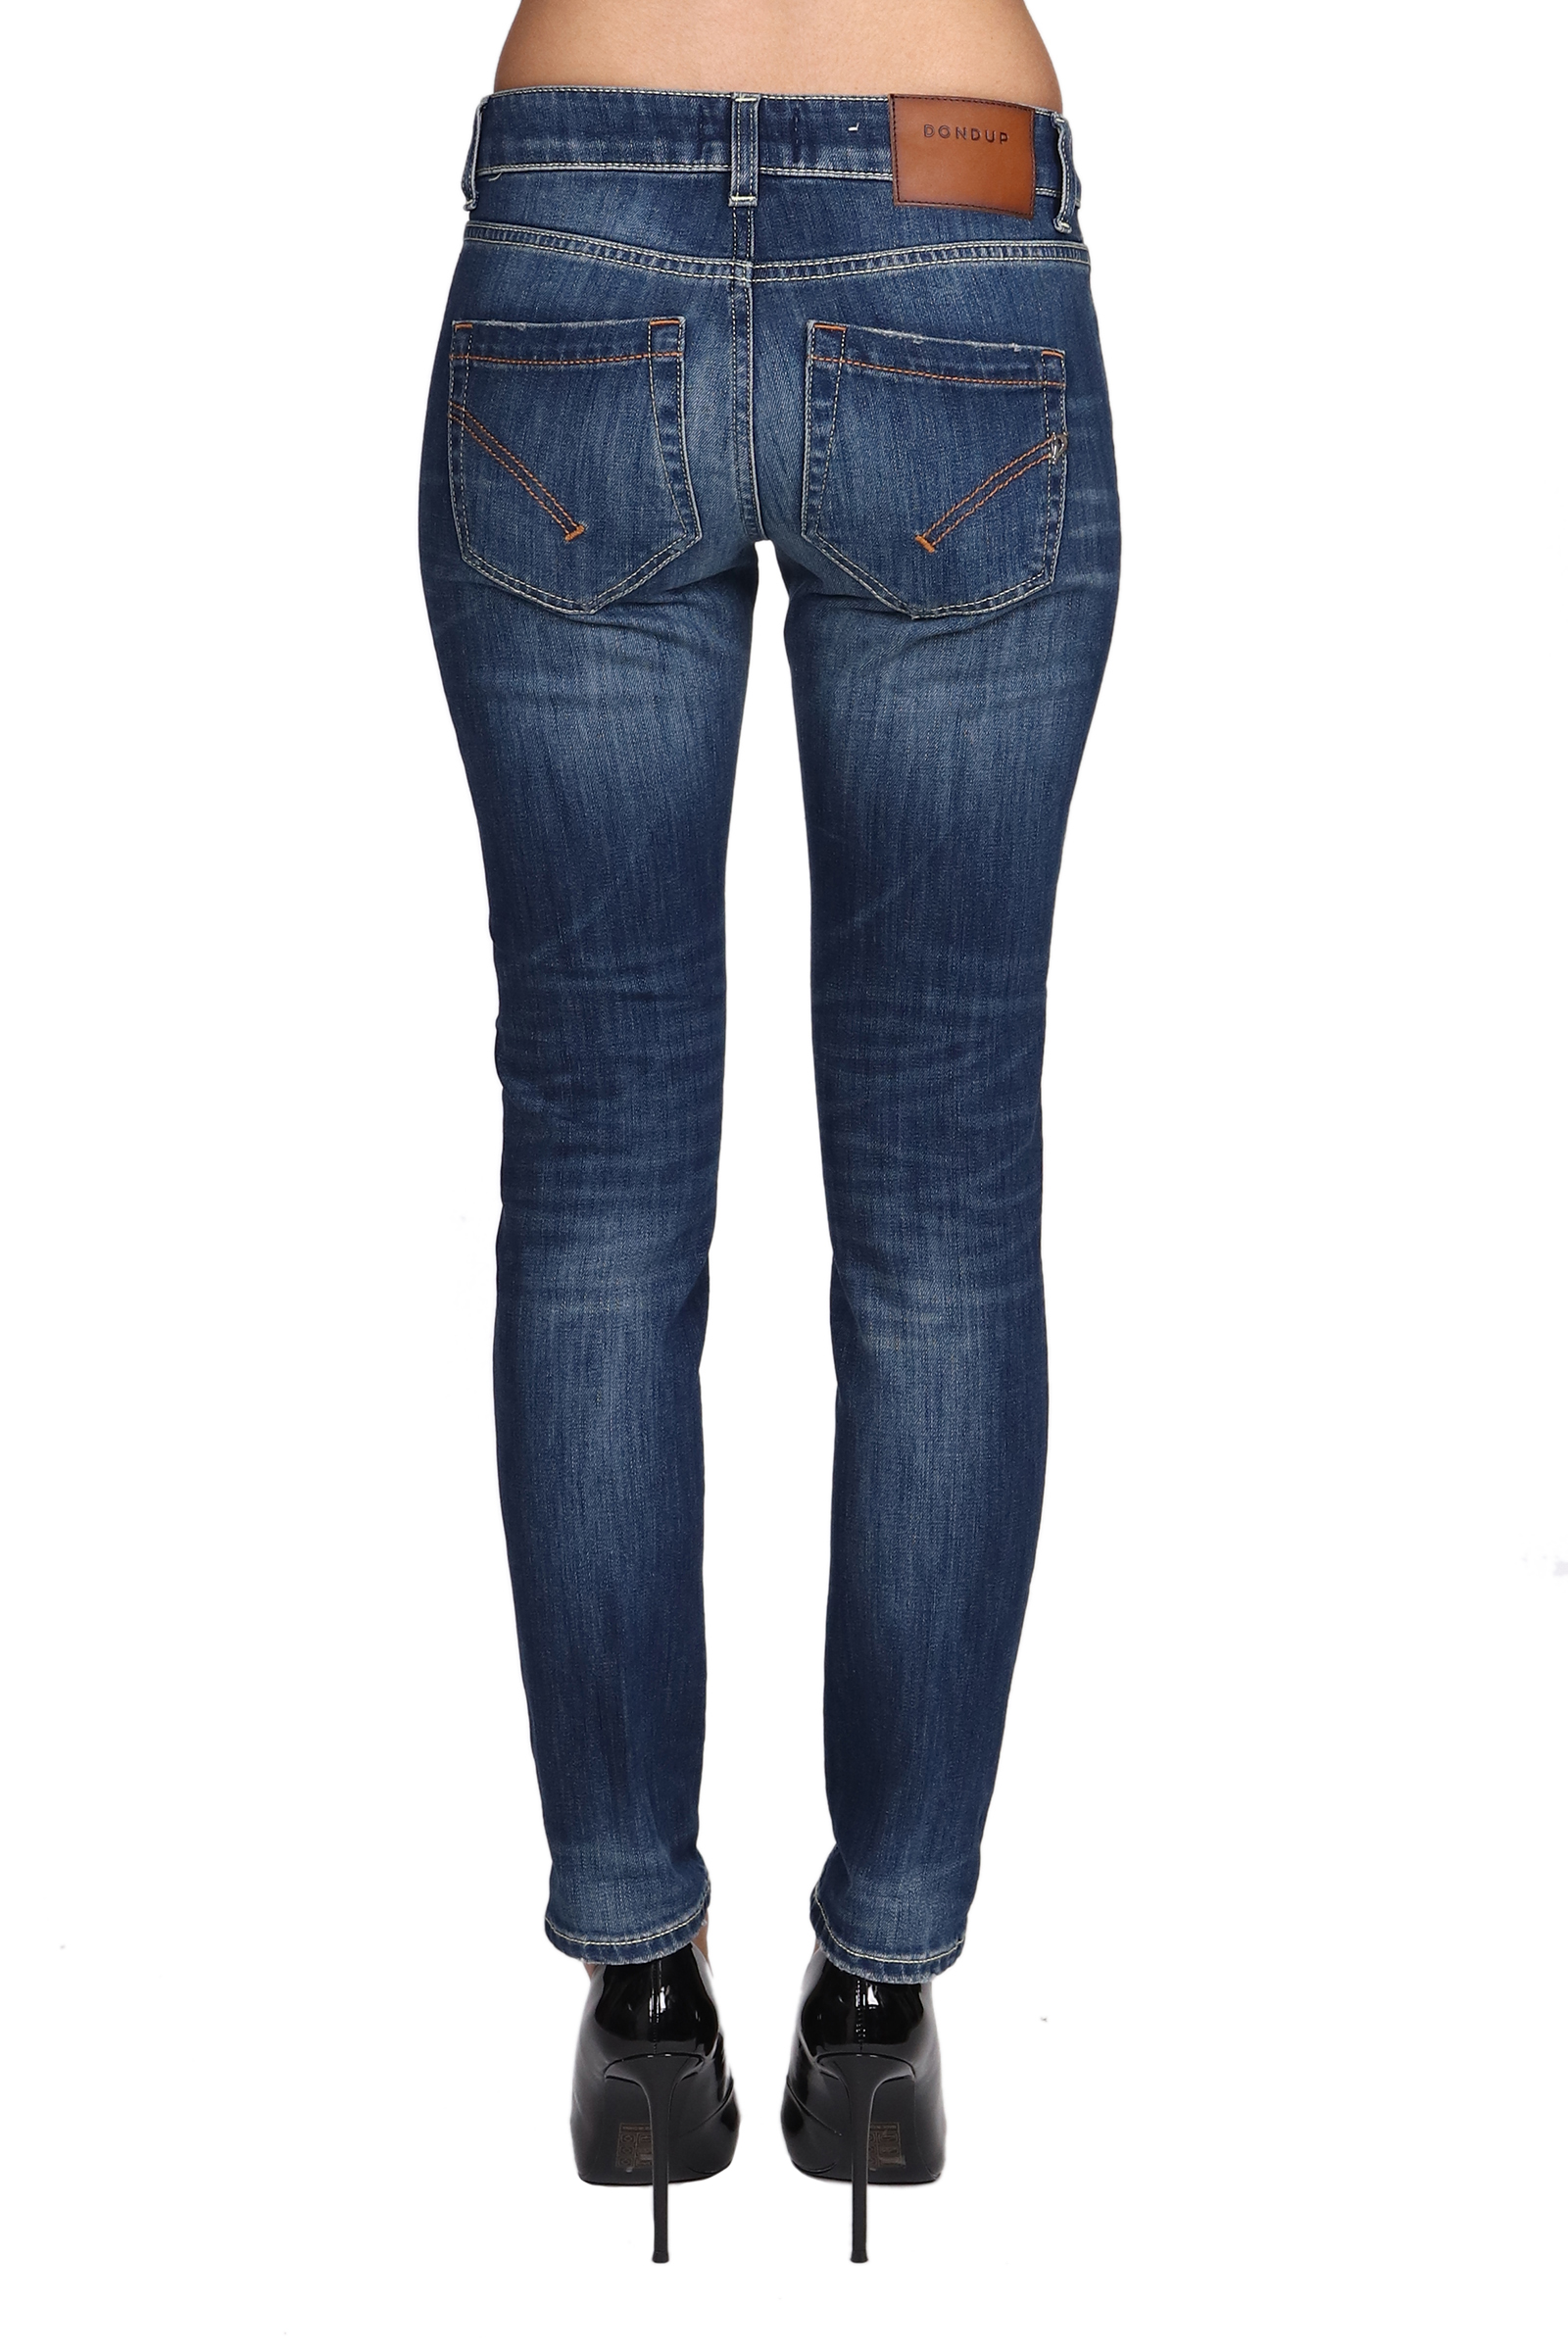 MONROE JEANS IN MIXED COTTON DONDUP | Jeans | P692DS0107DW99PDD800